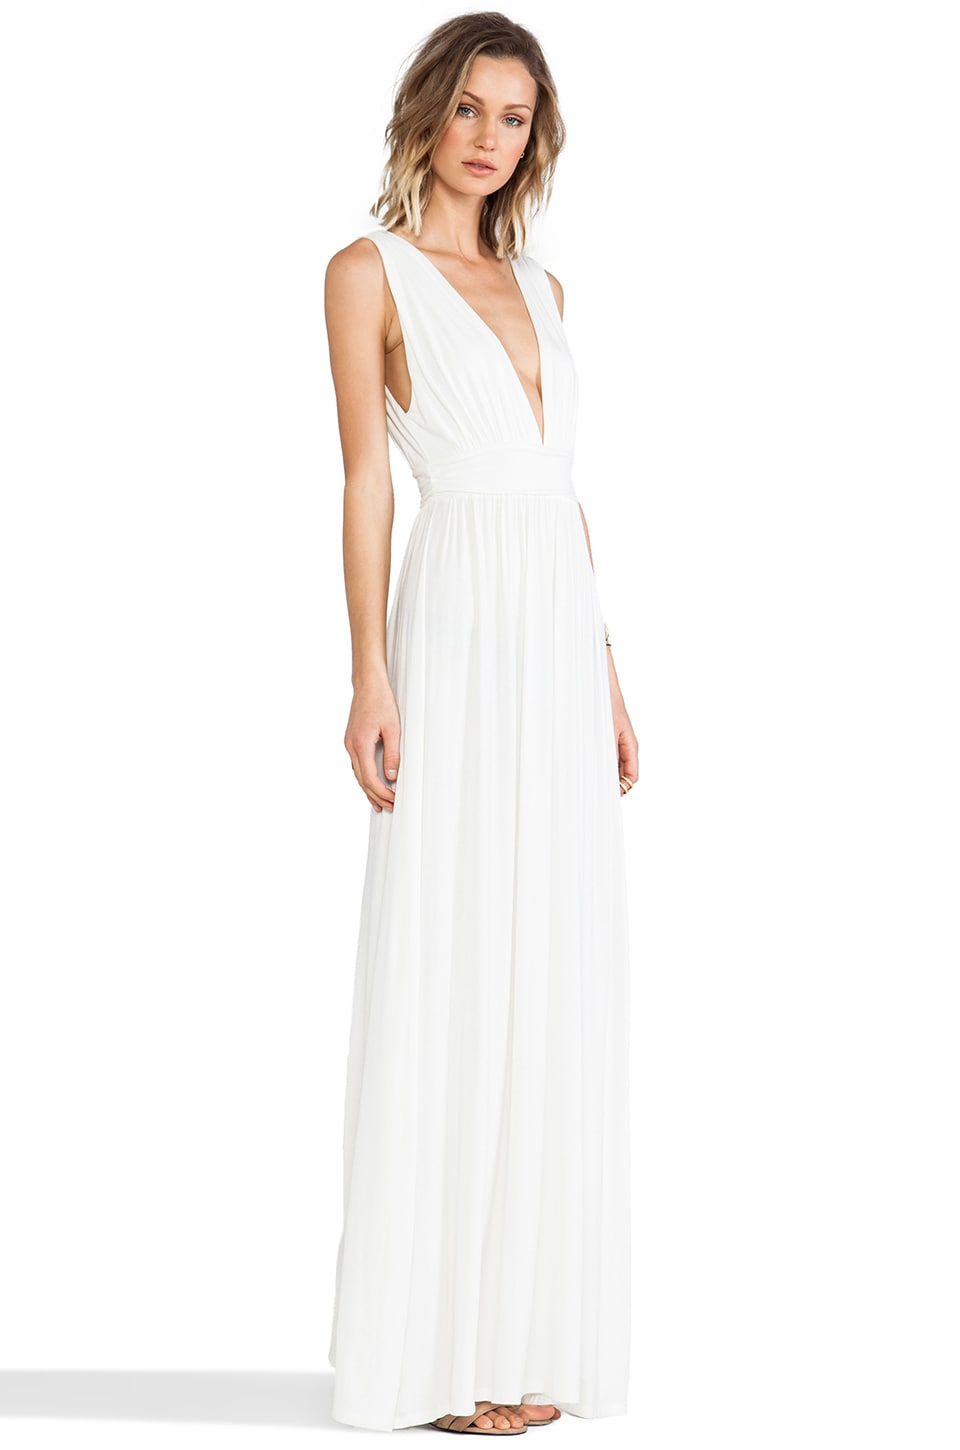 White maxi dresses nz